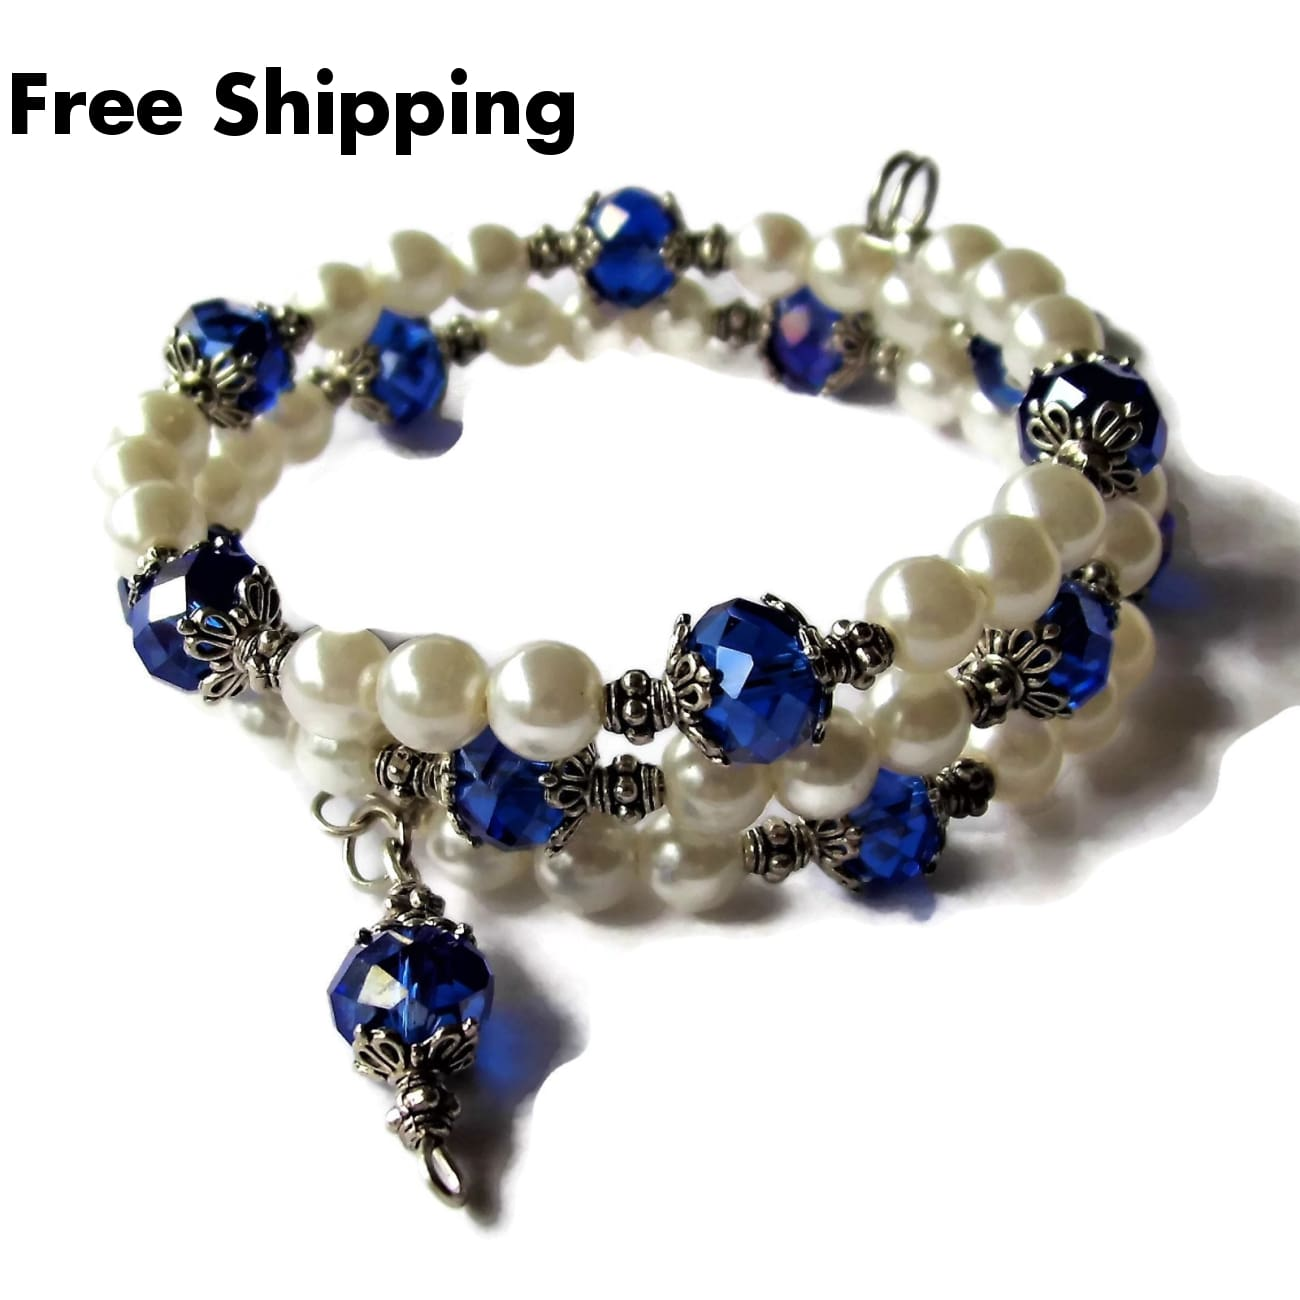 Deep Blue Swarovski Crystal I Heart My Soldier & White Pearl Beaded Artisan Crafted Wrap Bracelet - Bracelets